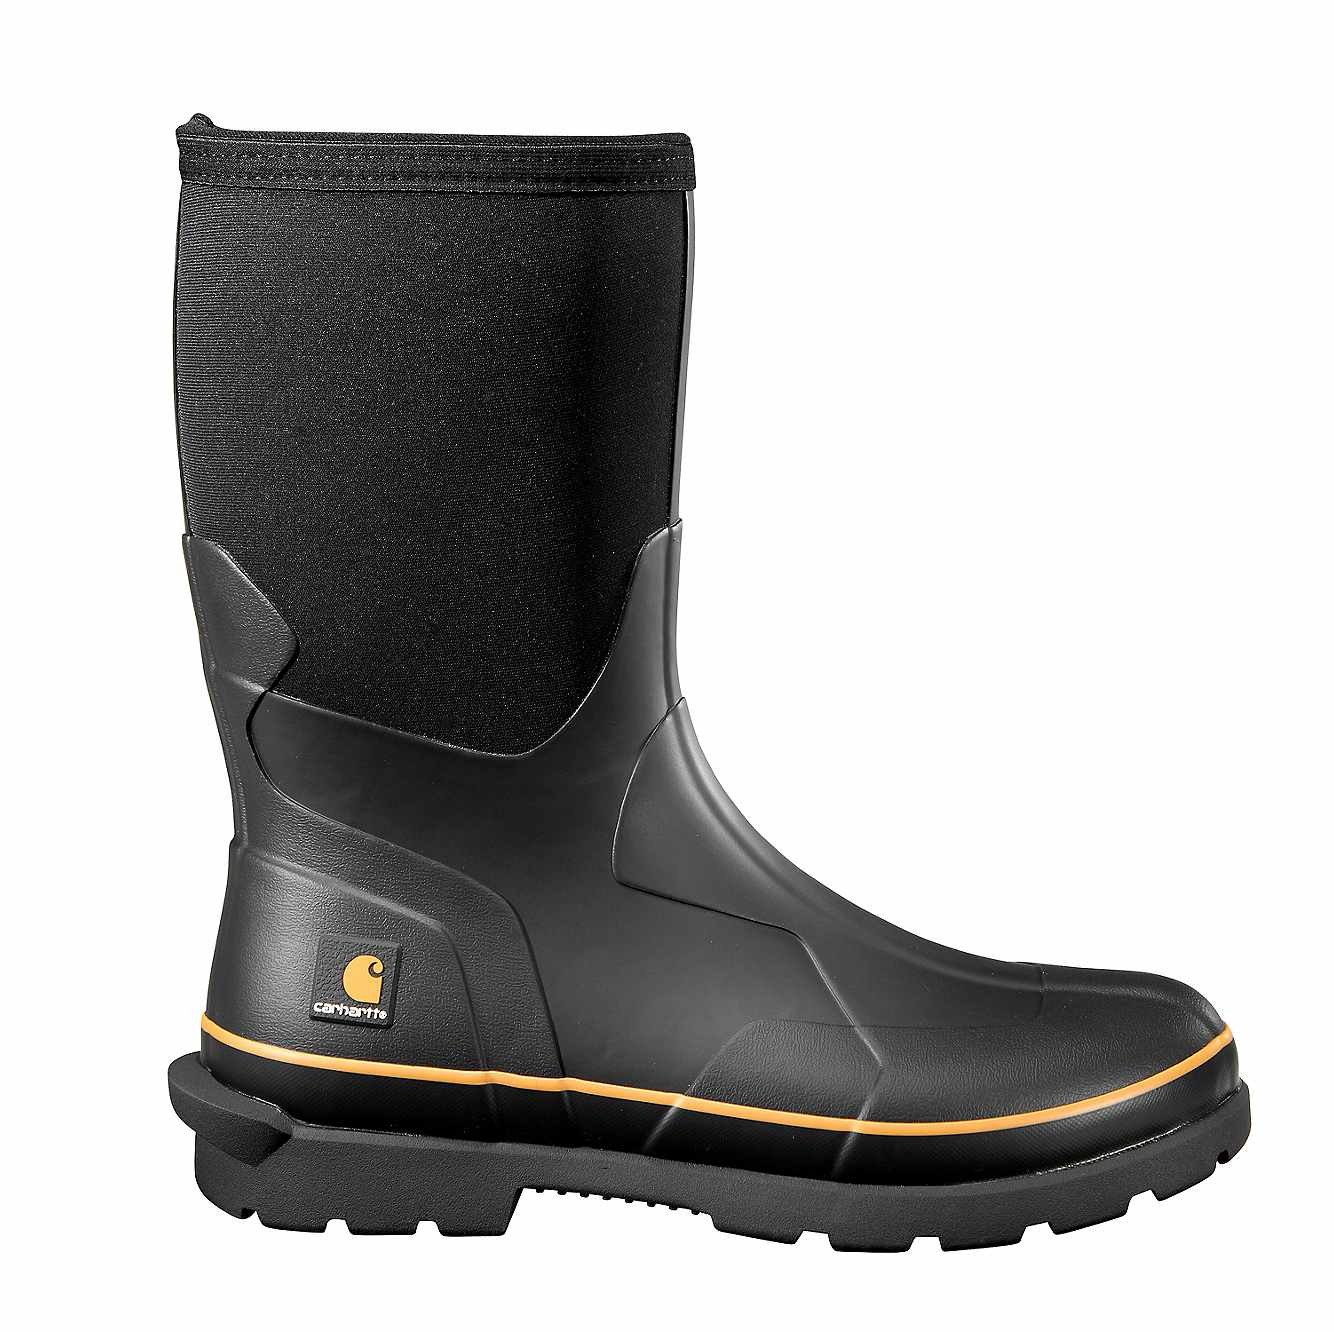 Picture of Mudrunner 10-Inch Non-Safety Toe Rubber Boot in Black